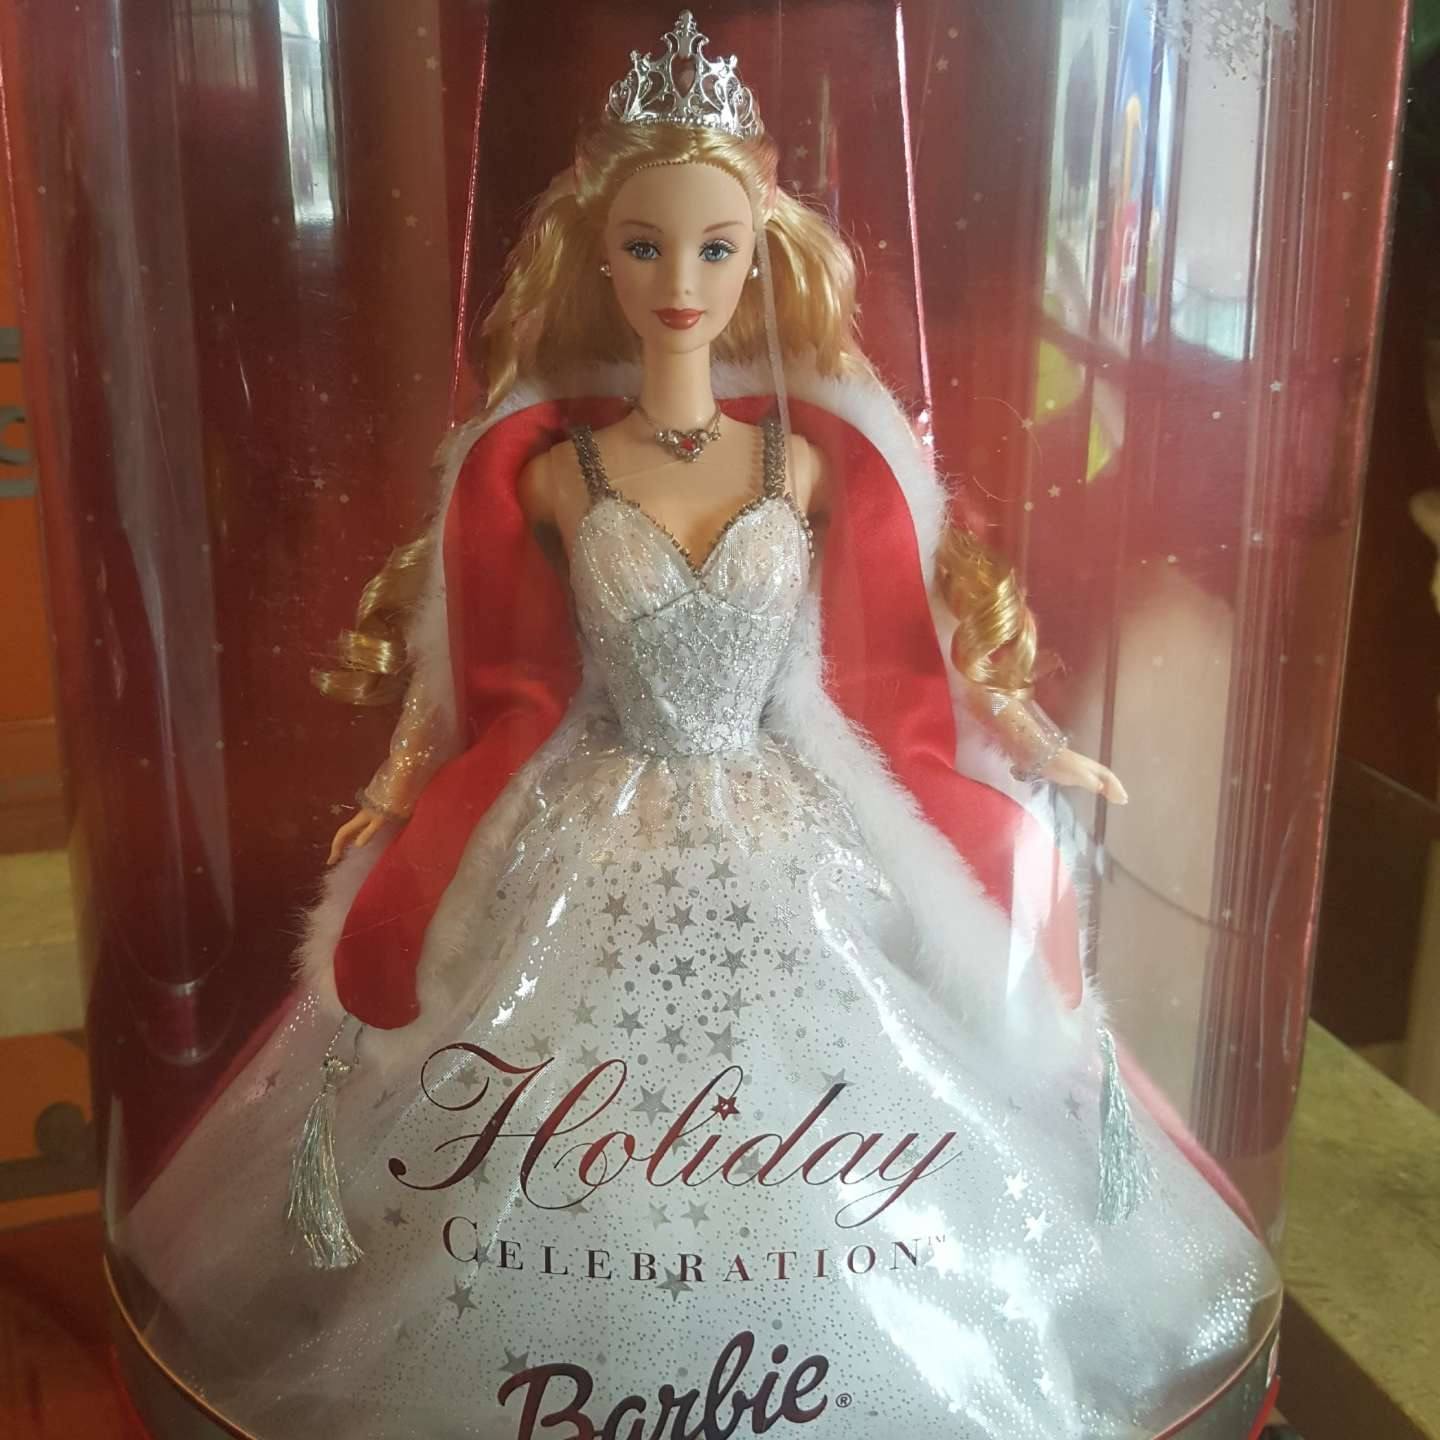 Photo Special 2001 Edition Holiday Celebration Barbie